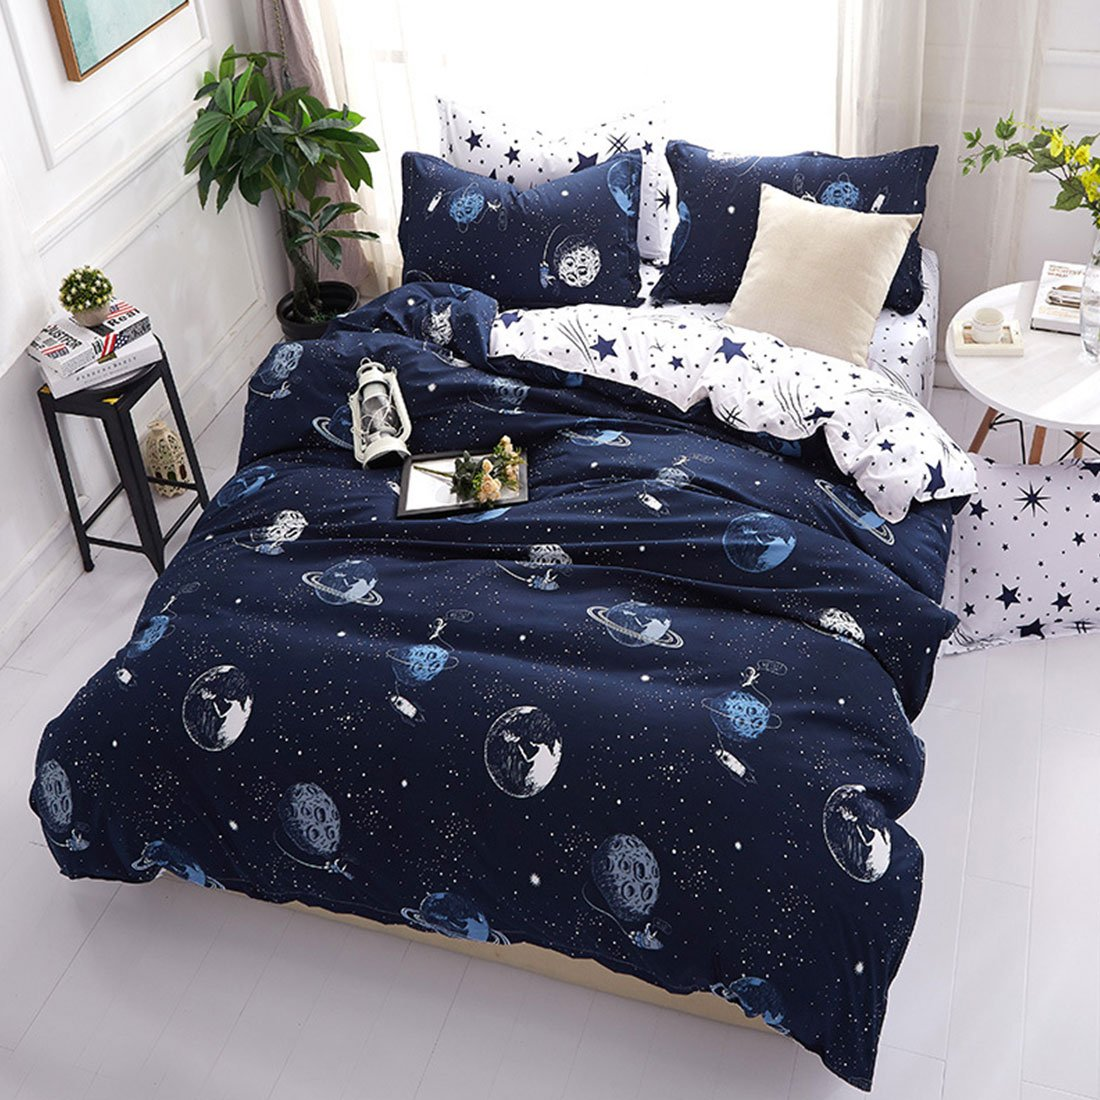 Hotel Luxury 3pc Duvet Cover Set 100% Cotton Bedding Star Wars Printed Ultra Soft Top Premium Lightweight Microfiber Bedding Collection with Zipper Closure Queen Size